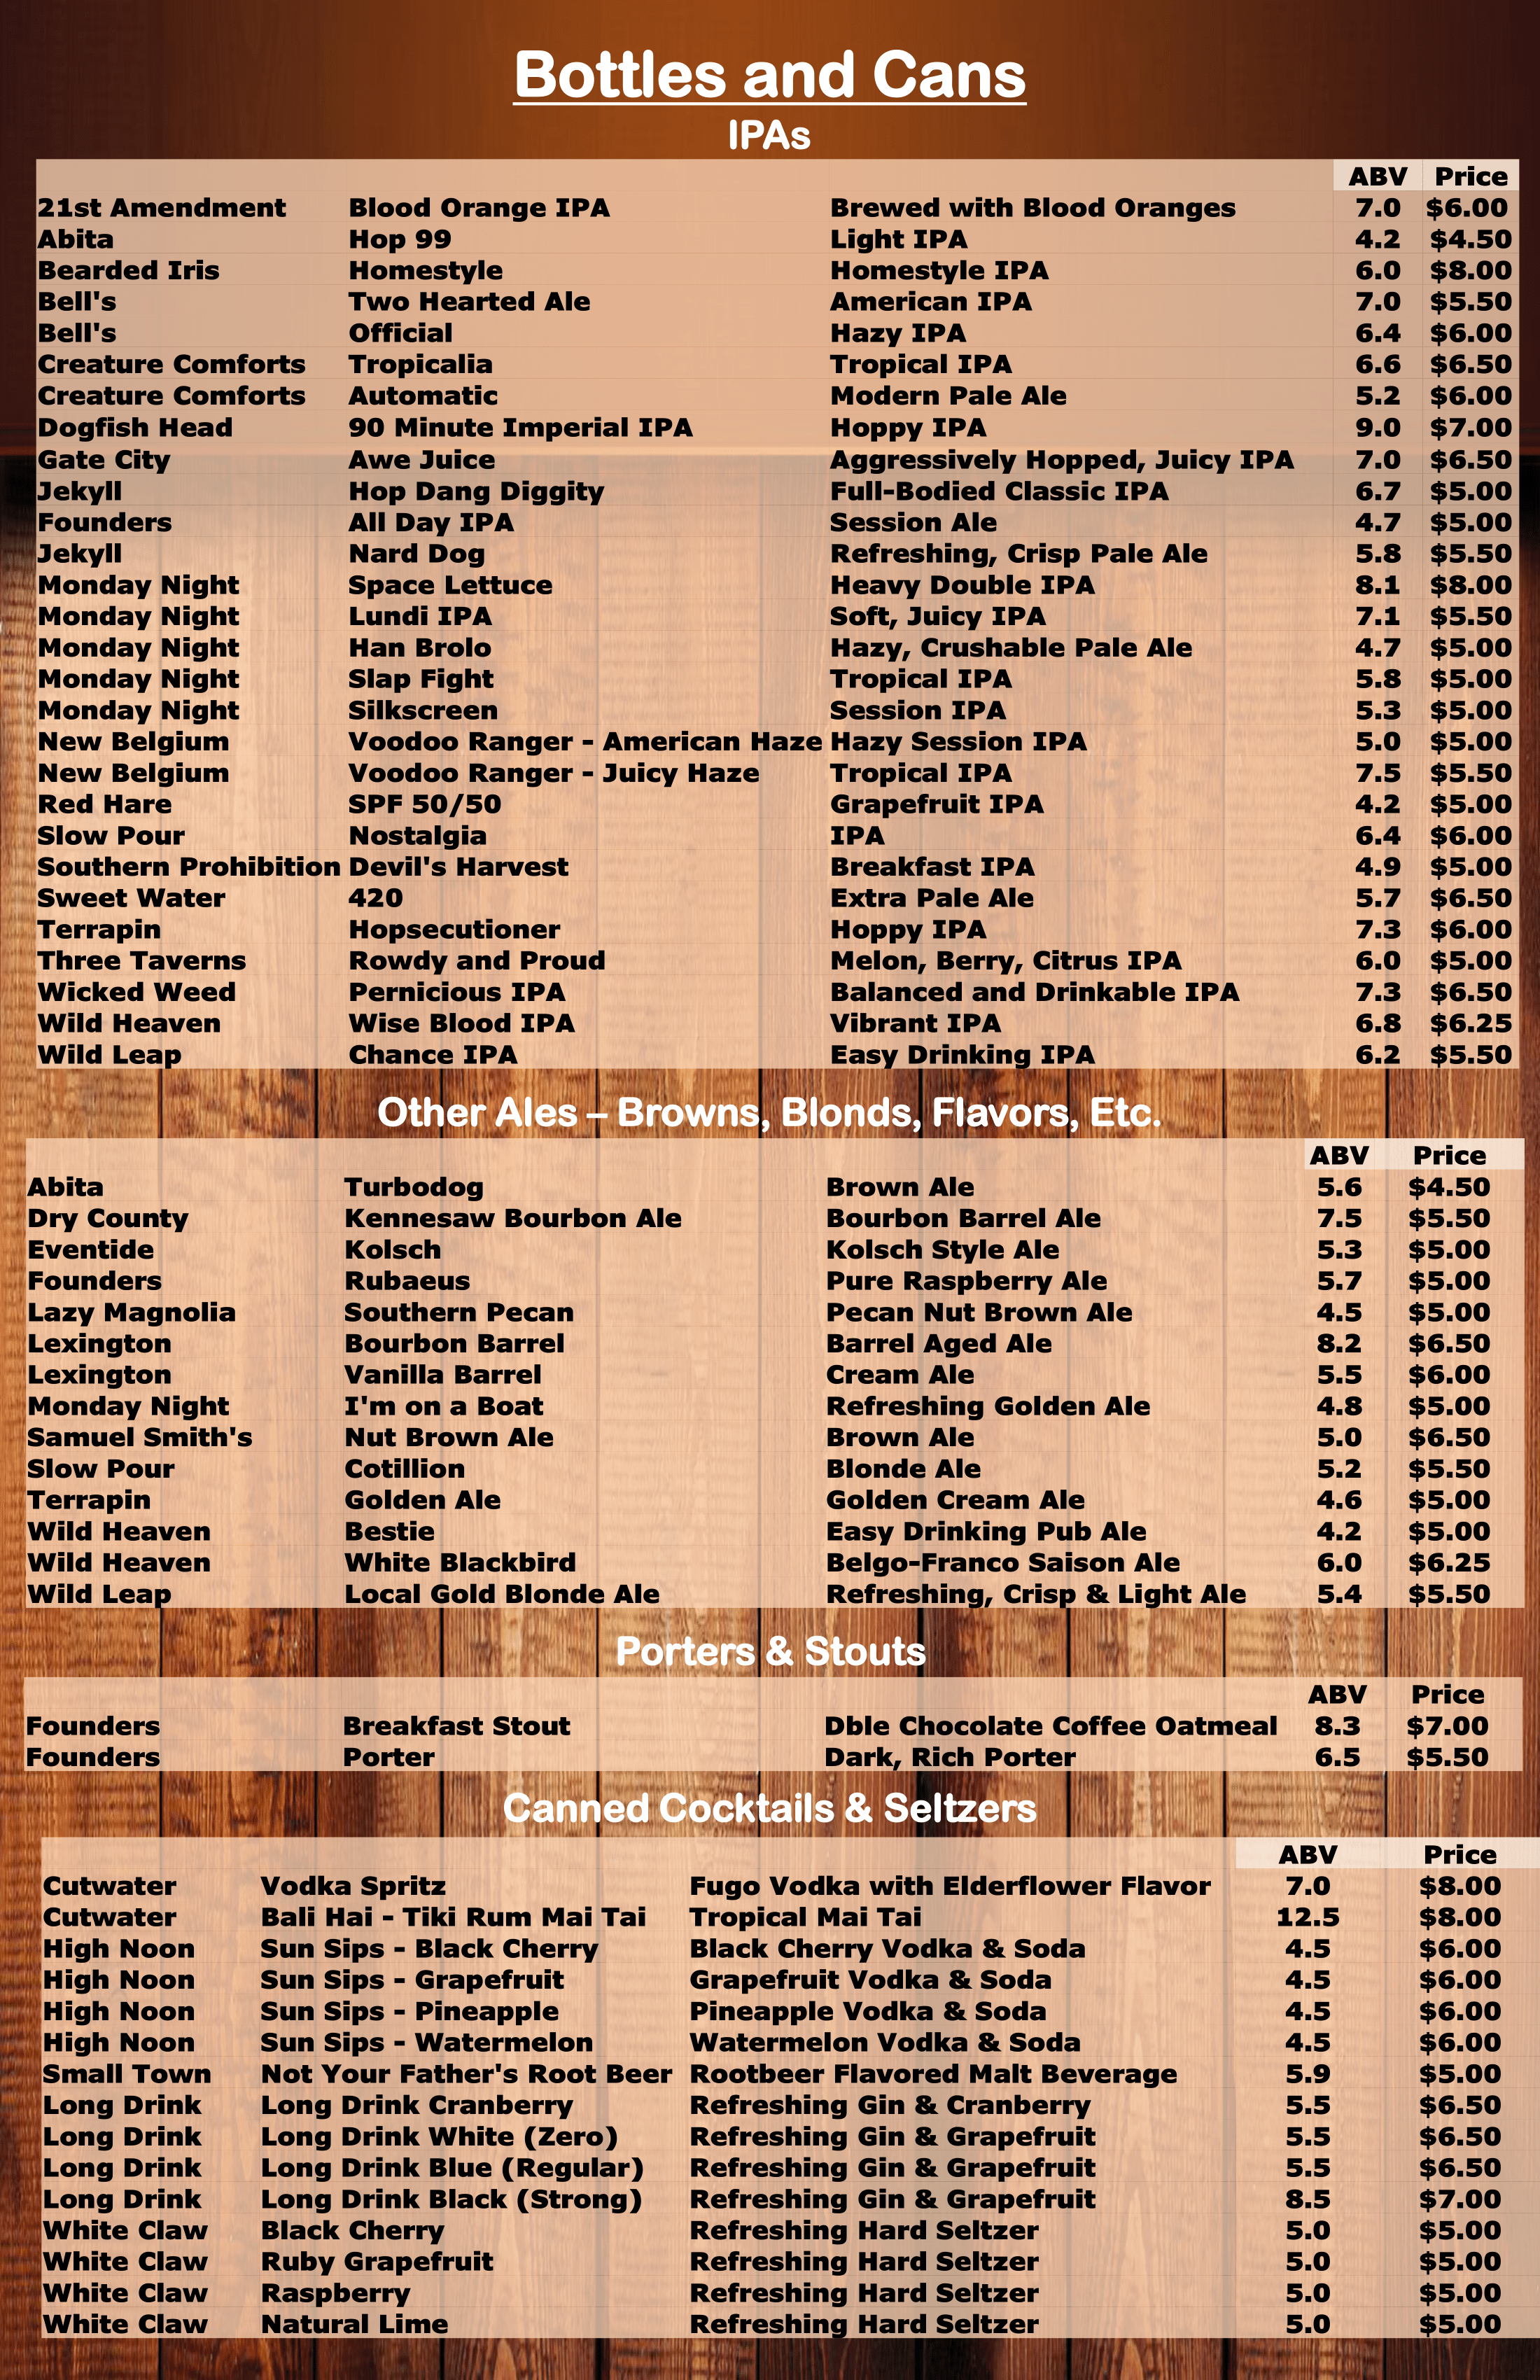 Bottles and Cans (IPA) - ABV Price 21st Amendment Blood Orange IPA Brewed with Blood Oranges 7.0 $6.00 Abita Hop 99 Light IPA 4.2 $4.50 Bearded Iris Homestyle Homestyle IPA 6.0 $8.00 Bell's Two Hearted Ale American IPA 7.0 $5.50 Bell's Official Hazy IPA 6.4 $6.00 Creature Comforts Tropicalia Tropical IPA 6.6 $6.50 Creature Comforts Automatic Modern Pale Ale 5.2 $6.00 Dogfish Head 90 Minute Imperial IPA Hoppy IPA 9.0 $7.00 Gate City Awe Juice Aggressively Hopped, Juicy IPA 7.0 $6.50 Jekyll Hop Dang Diggity Full-Bodied Classic IPA 6.7 $5.00 Founders All Day IPA Session Ale 4.7 $5.00 Jekyll Nard Dog Refreshing, Crisp Pale Ale 5.8 $5.50 Monday Night Space Lettuce Heavy Double IPA 8.1 $8.00 Monday Night Lundi IPA Soft, Juicy IPA 7.1 $5.50 Monday Night Han Brolo Hazy, Crushable Pale Ale 4.7 $5.00 Monday Night Slap Fight Tropical IPA 5.8 $5.00 Monday Night Silkscreen Session IPA 5.3 $5.00 New Belgium Voodoo Ranger - American Haze Hazy Session IPA 5.0 $5.00 New Belgium Voodoo Ranger - Juicy Haze Tropical IPA 7.5 $5.50 Red Hare SPF 50/50 Grapefruit IPA 4.2 $5.00 Slow Pour Nostalgia IPA 6.4 $6.00 Southern Prohibition Devil's Harvest Breakfast IPA 4.9 $5.00 Sweet Water 420 Extra Pale Ale 5.7 $6.50 Terrapin Hopsecutioner Hoppy IPA 7.3 $6.00 Three Taverns Rowdy and Proud Melon, Berry, Citrus IPA 6.0 $5.00 Wicked Weed Pernicious IPA Balanced and Drinkable IPA 7.3 $6.50 Wild Heaven Wise Blood IPA Vibrant IPA 6.8 $6.25 Wild Leap Chance IPA Easy Drinking IPA 6.2 $5.50. 0 Other Ales – Browns, Blonds, Flavors, Etc. Abita Turbodog Brown Ale 5.6 $4.50 Dry County Kennesaw Bourbon Ale Bourbon Barrel Ale 7.5 $5.50 Eventide Kolsch Kolsch Style Ale 5.3 $5.00 Founders Rubaeus Pure Raspberry Ale 5.7 $5.00 Lazy Magnolia Southern Pecan Pecan Nut Brown Ale 4.5 $5.00 Lexington Bourbon Barrel Barrel Aged Ale 8.2 $6.50 Lexington Vanilla Barrel Cream Ale 5.5 $6.00 Monday Night I'm on a Boat Refreshing Golden Ale 4.8 $5.00 Samuel Smith's Nut Brown Ale Brown Ale 5.0 $6.50 Slow Pour Cotillion Blonde Ale